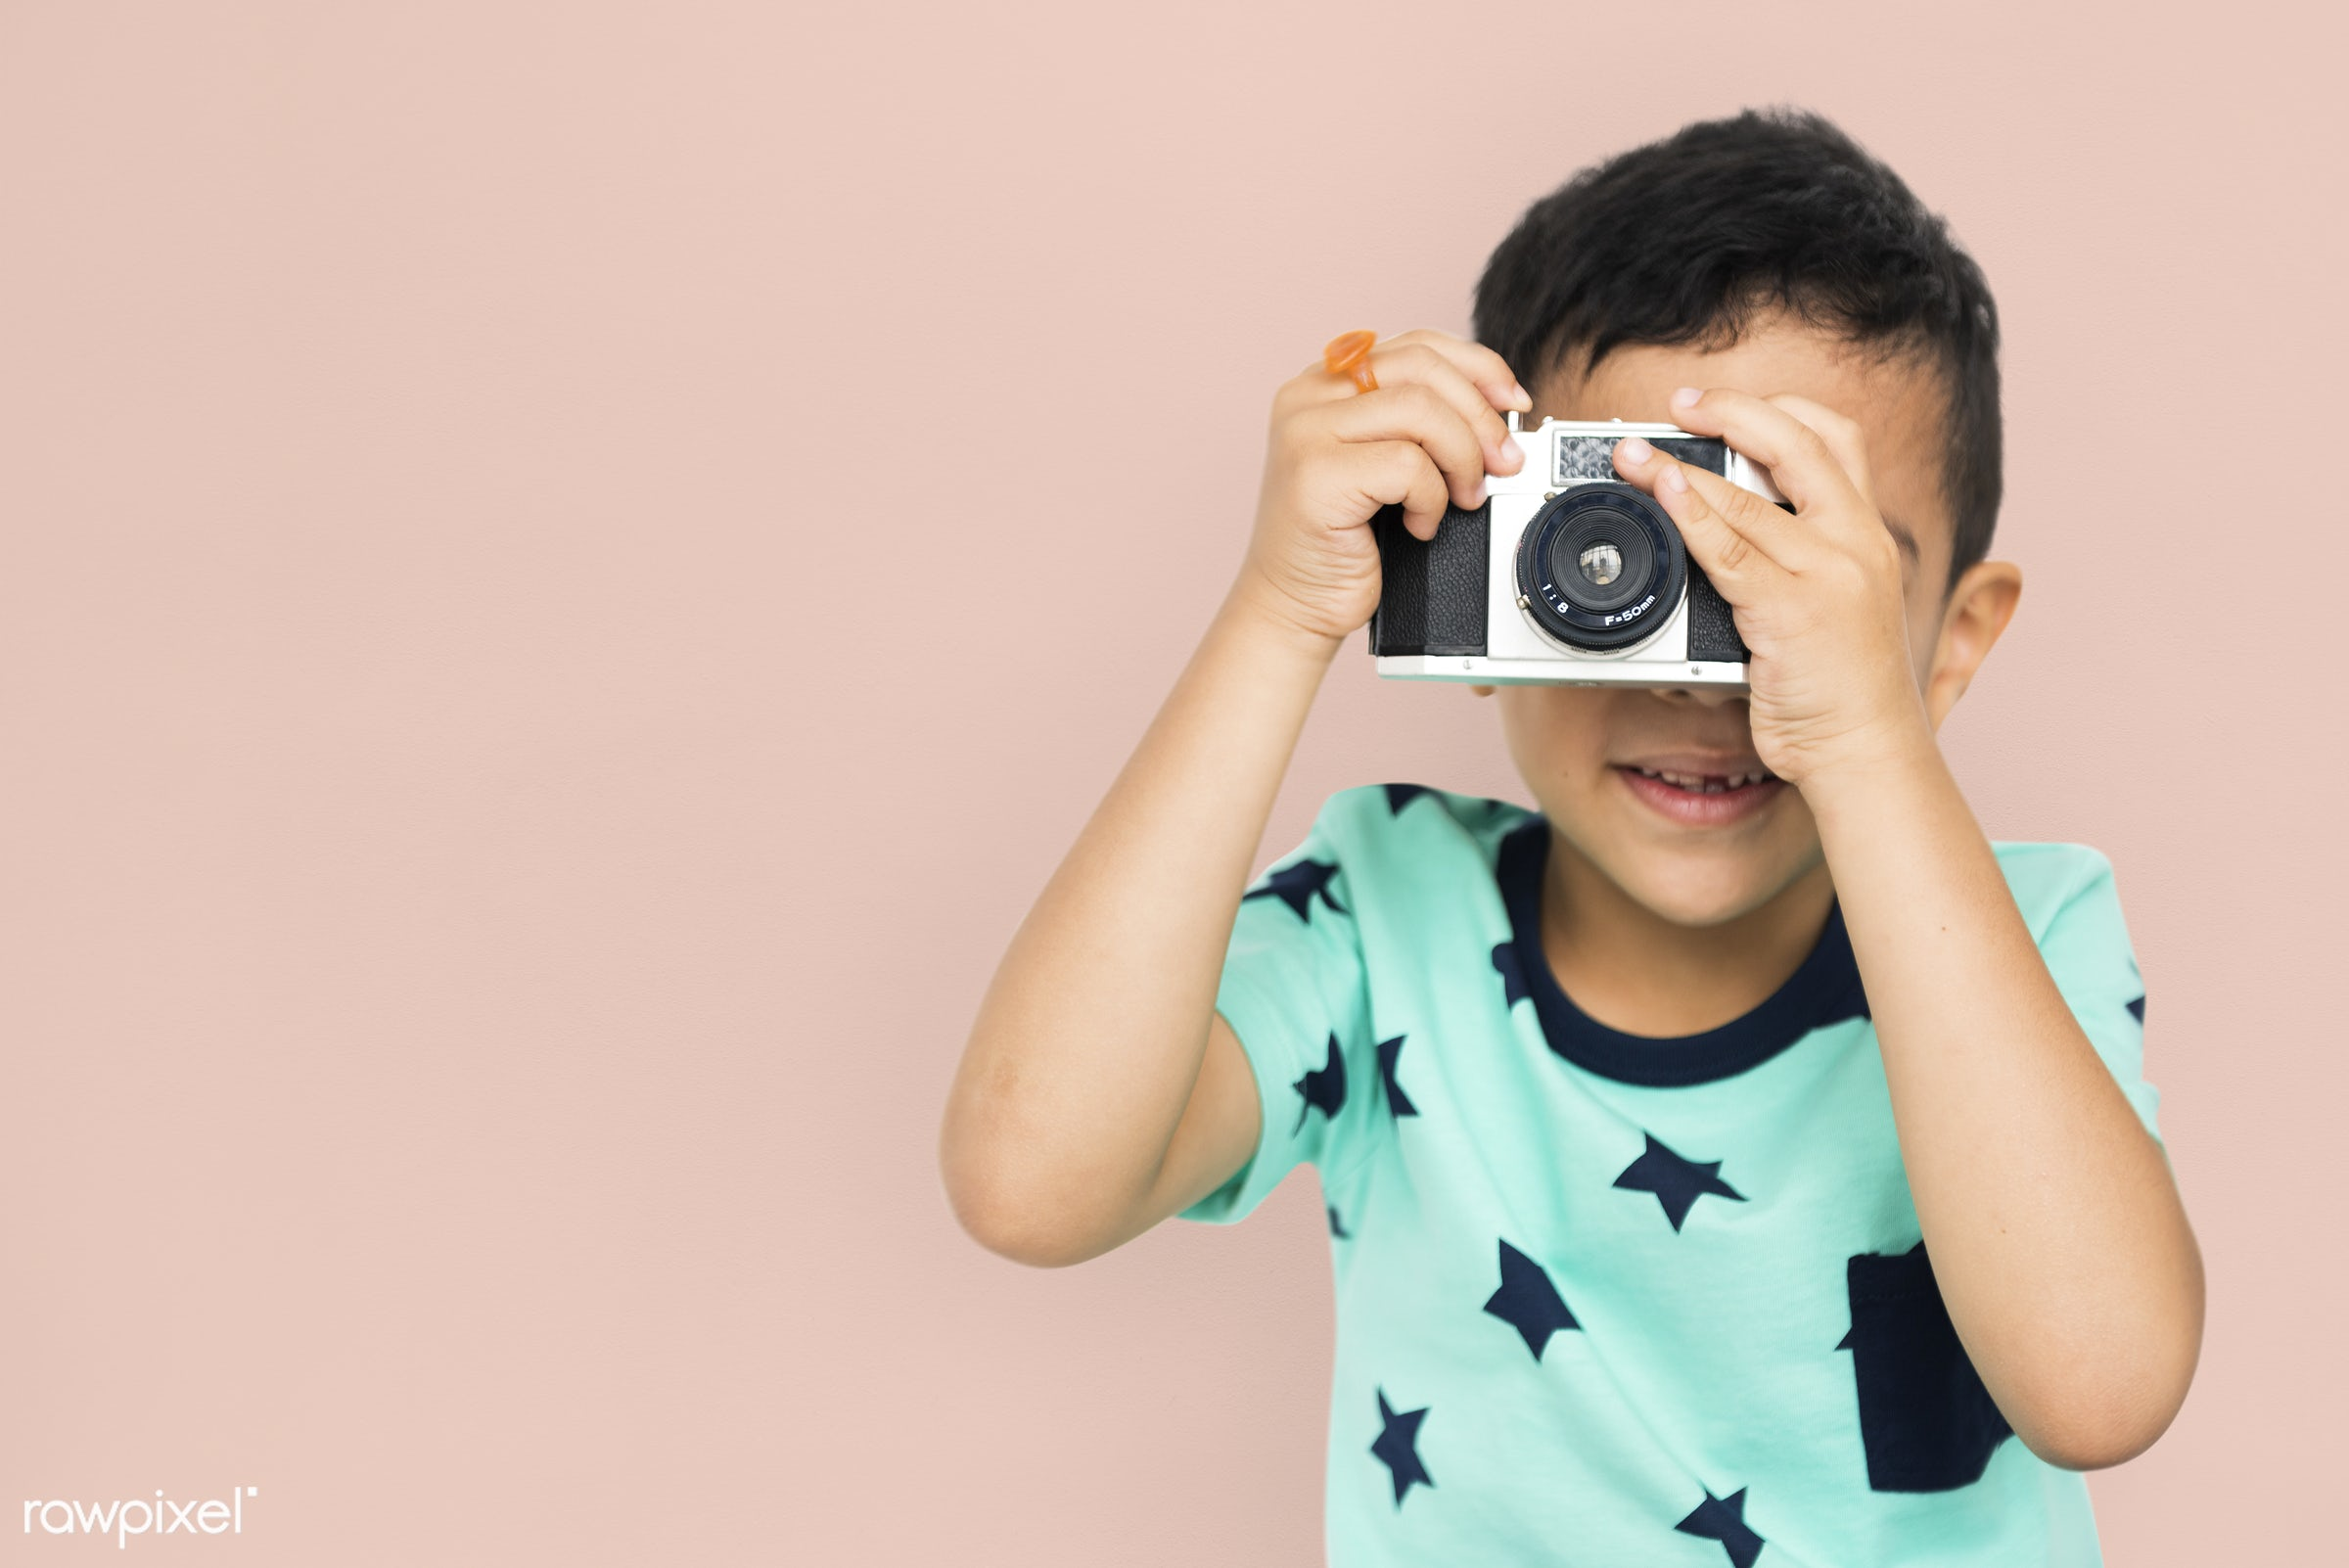 alone, boy, cheerful, child, children, isolated, kid, one, playful, smiling, young, youth, camera, photographer, snap, shot...